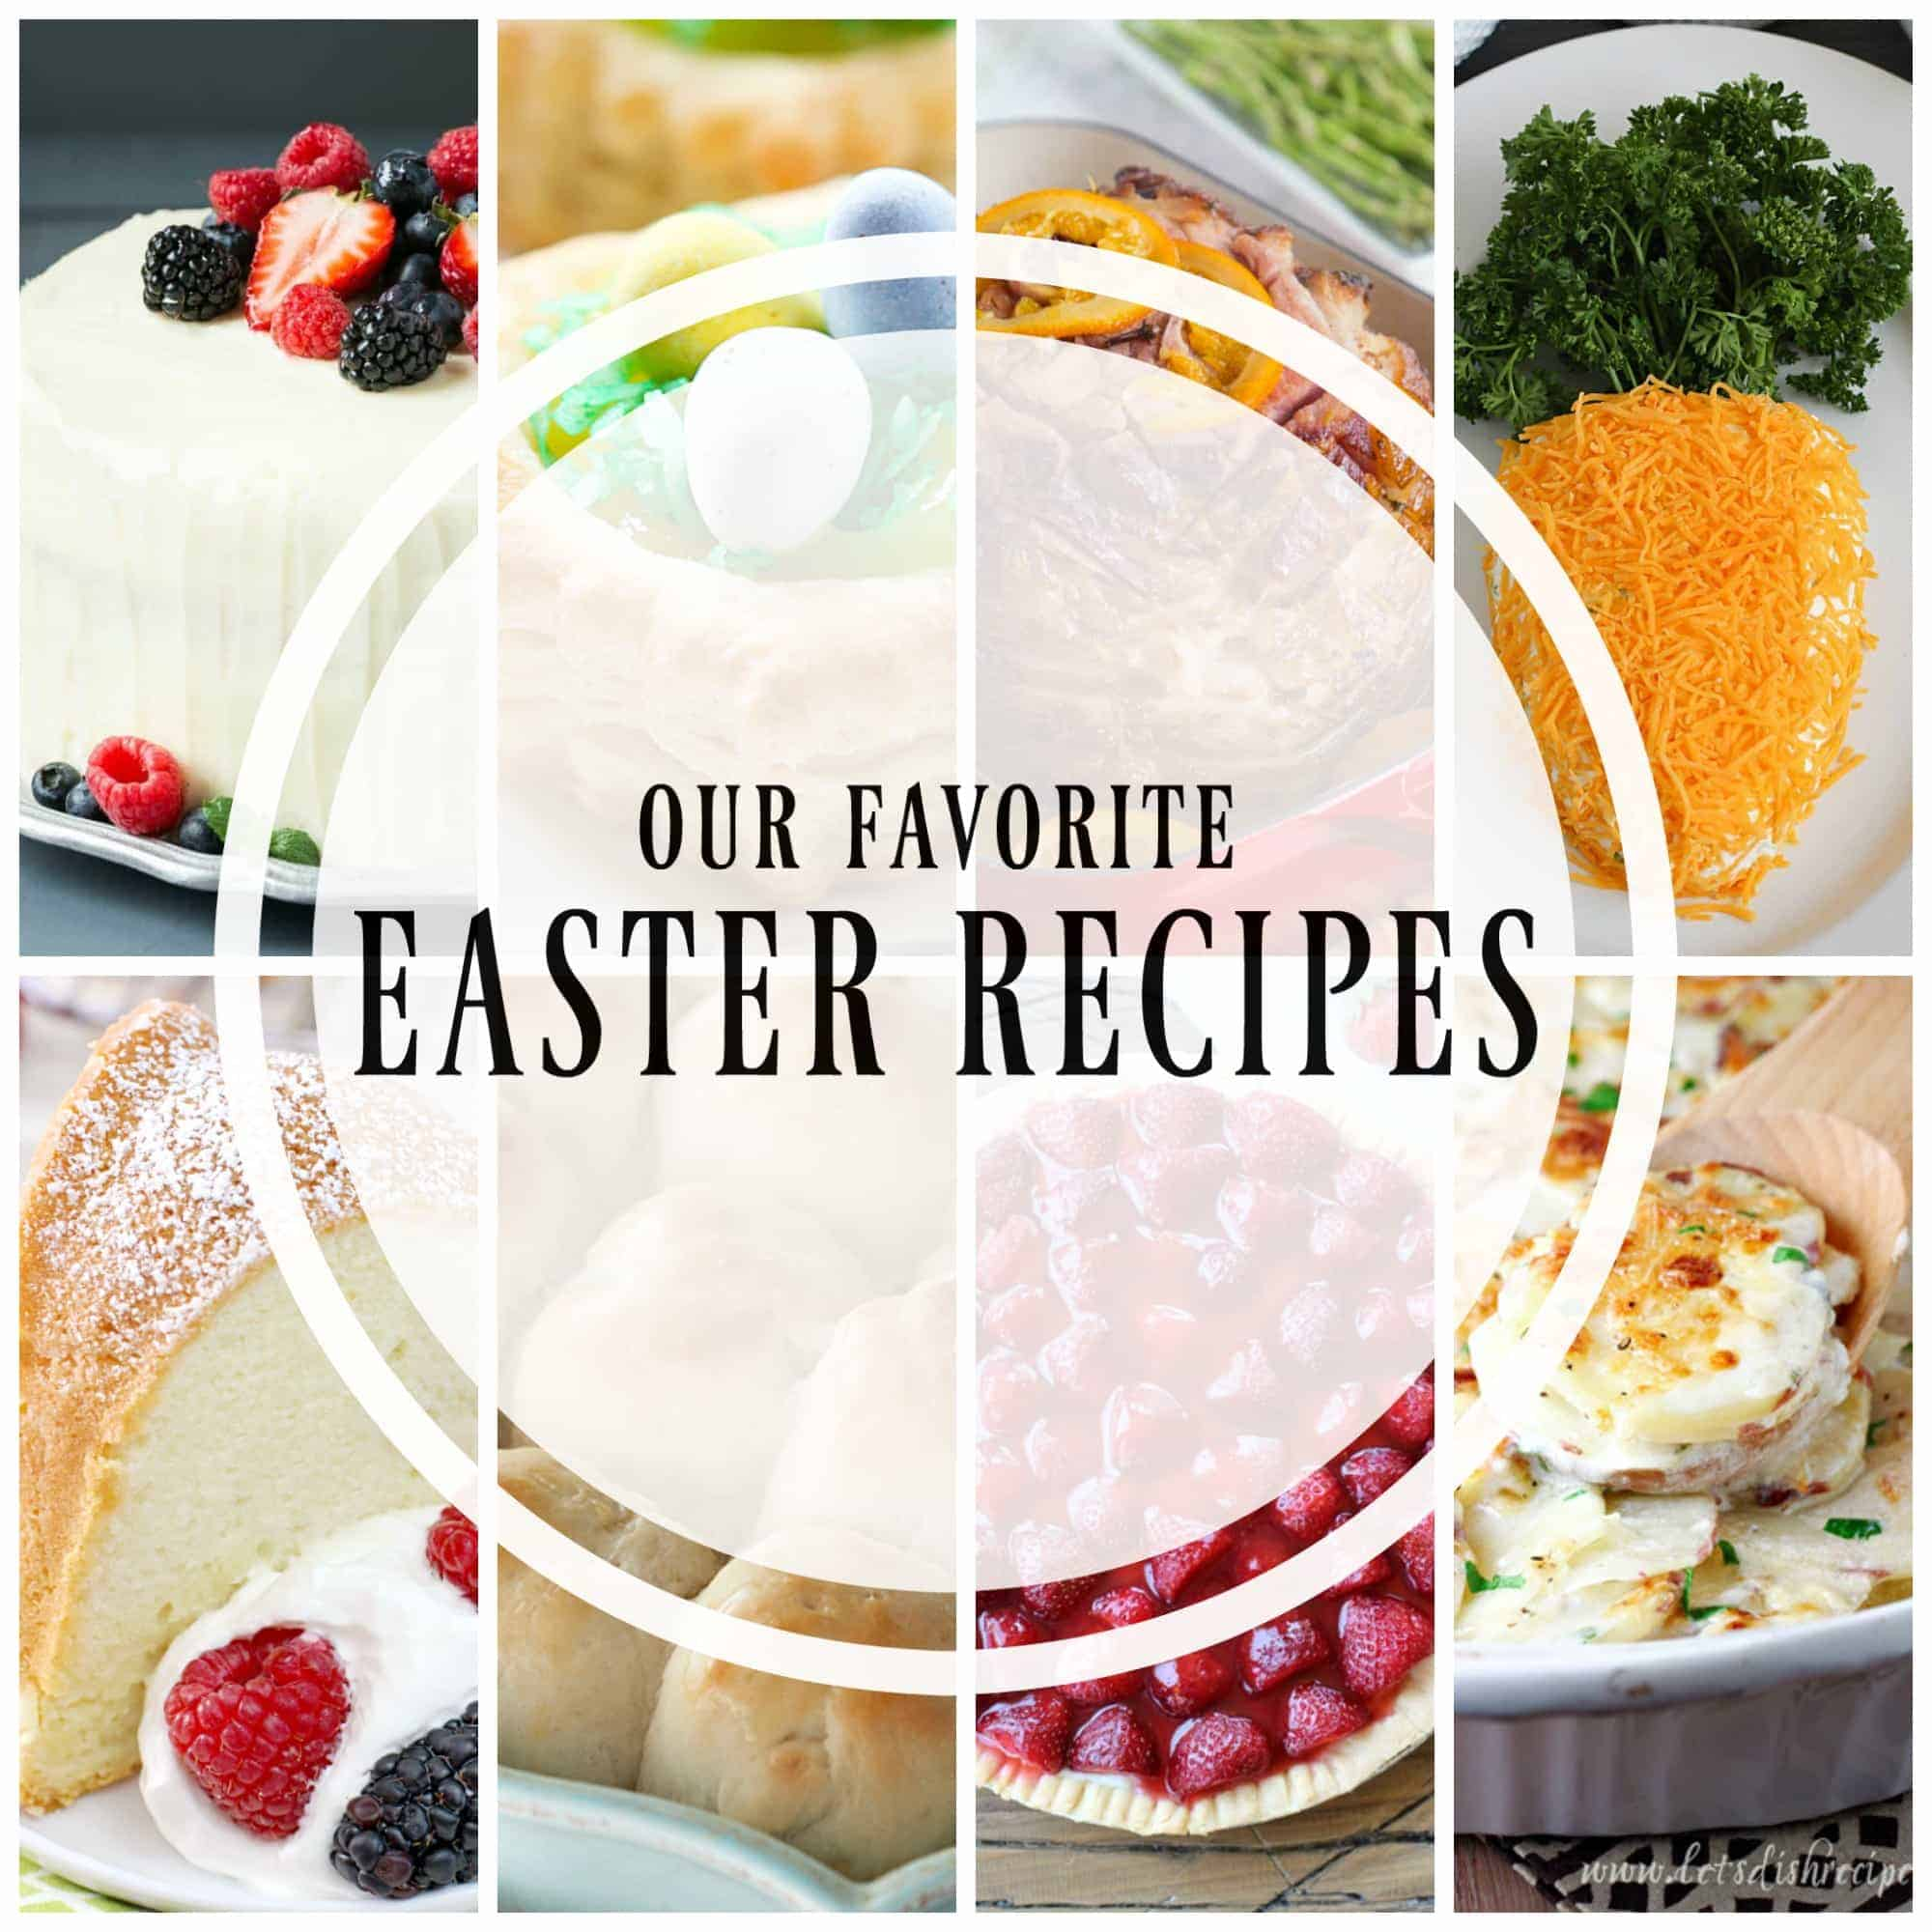 Spring is in the air and with Spring comes Easter! Here is a great selection from some of your favorite bloggers of their favorite Easter recipes.